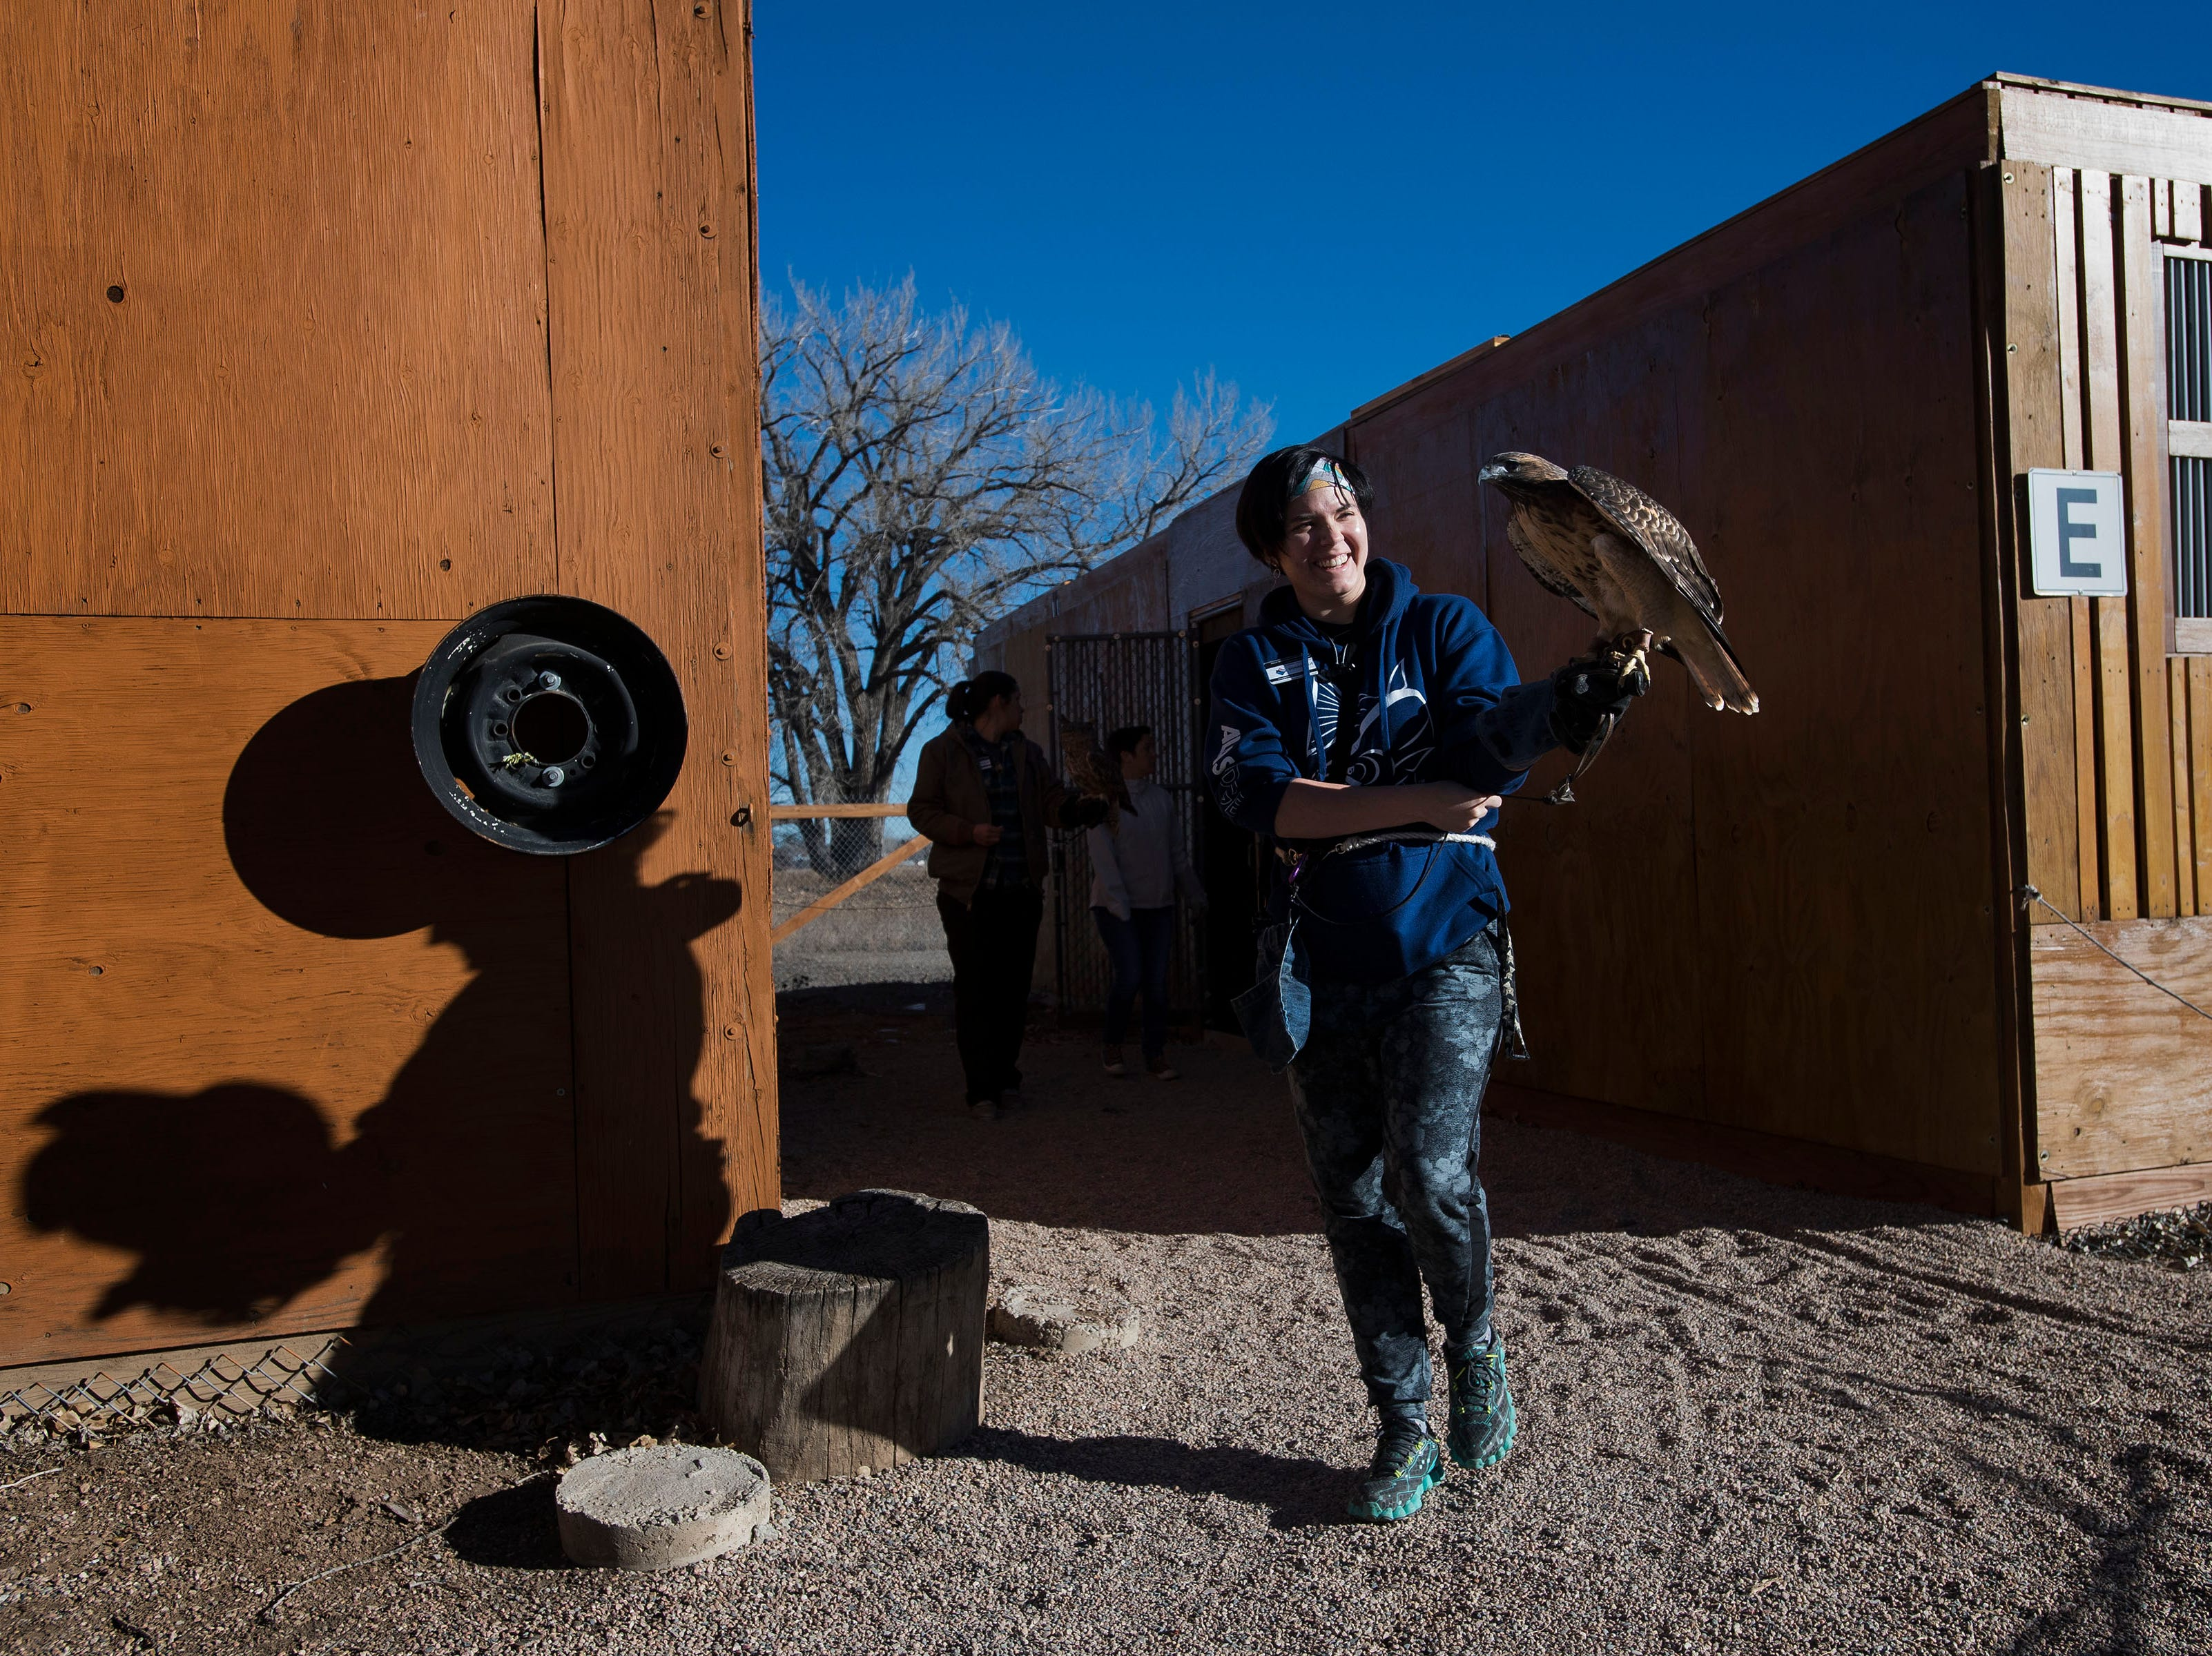 Handler Dominique Thigpen carries an educational red-tailed hawk out from its cage to be fed and on Friday, Feb. 1, 2019, at the Rocky Mountain Raptor Program in Fort Collins, Colo.